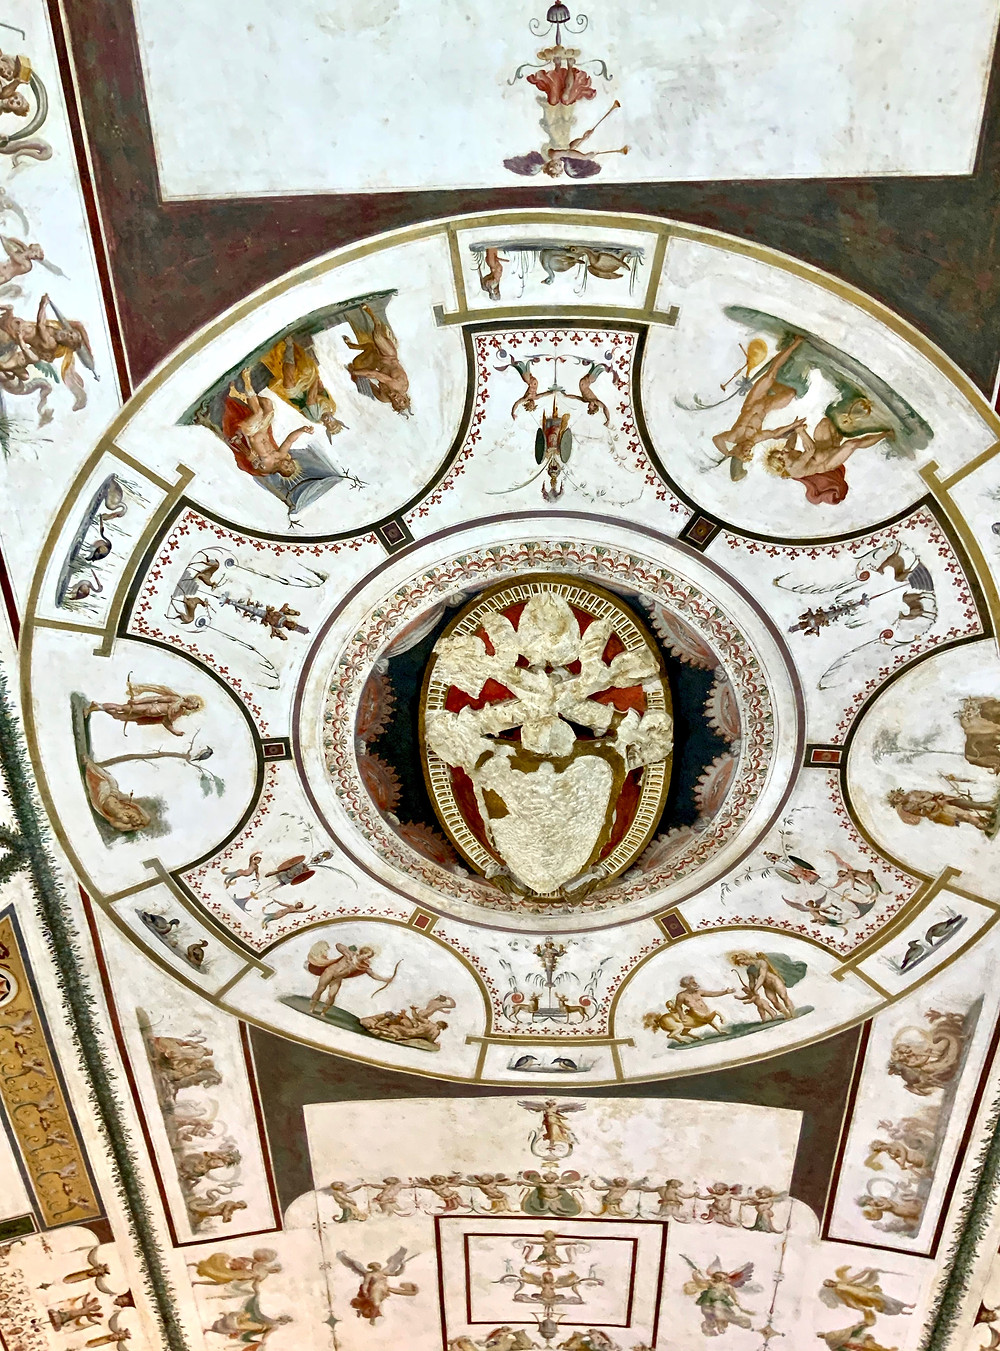 grotesque-type frescos on the ceiling in the papal apartments